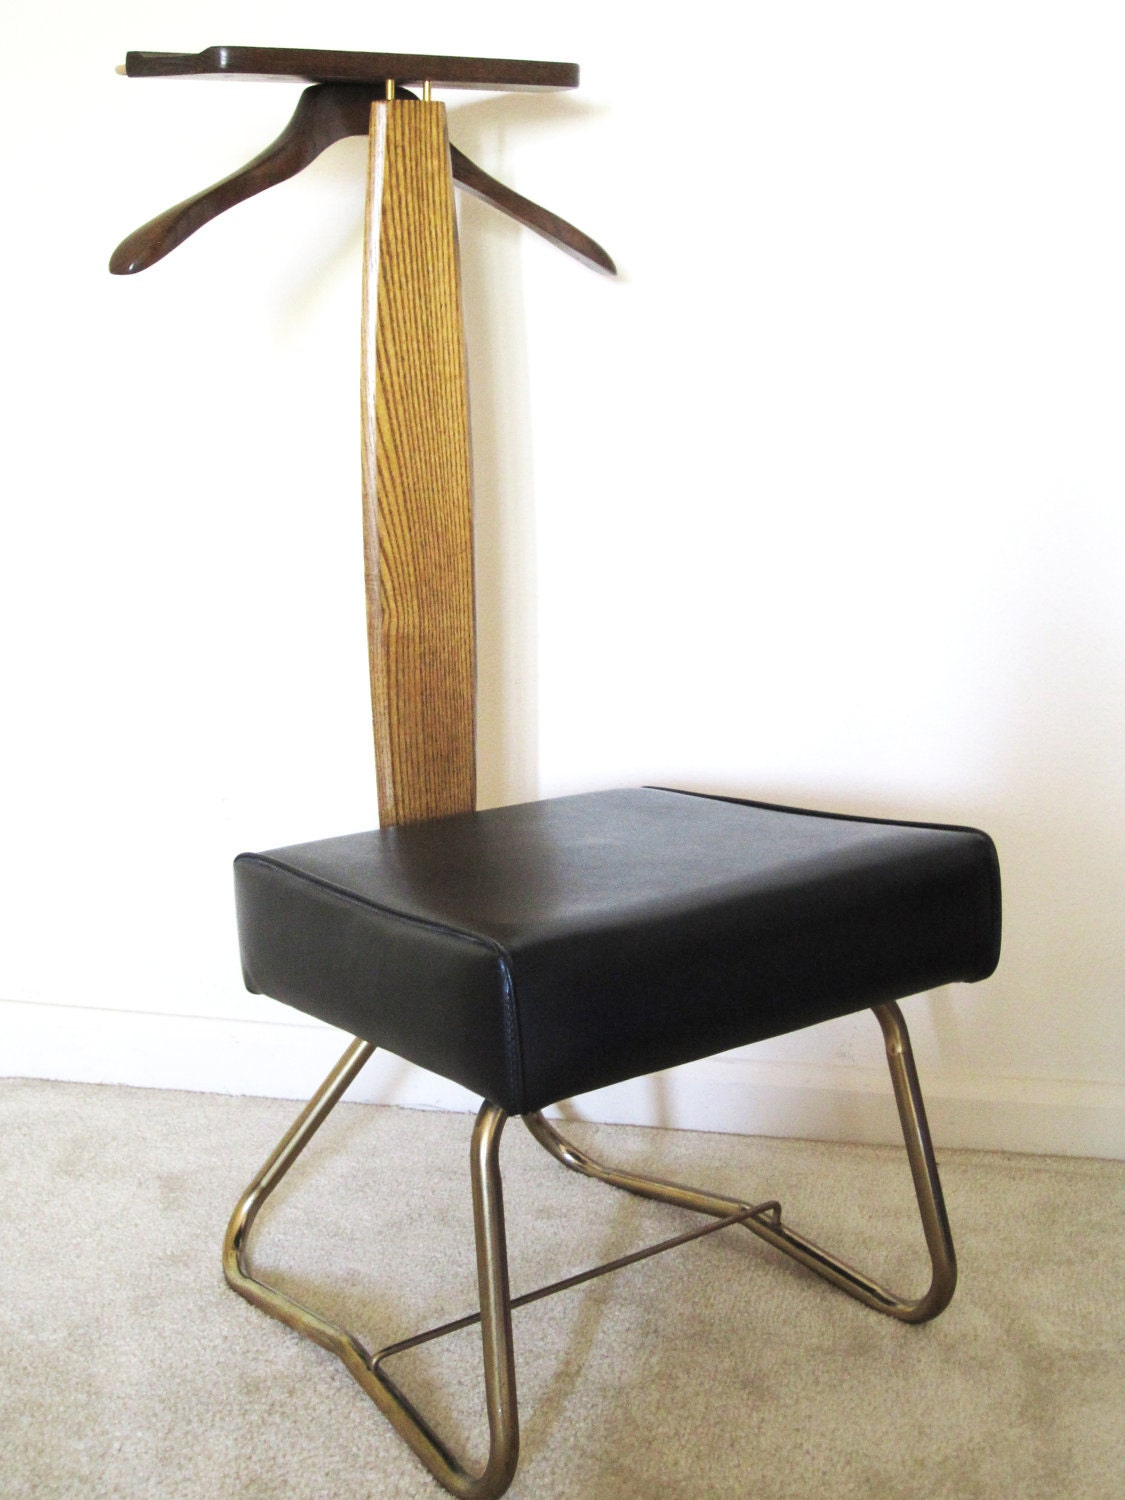 Mid century setwell valet chair by spacesplacesthings on etsy